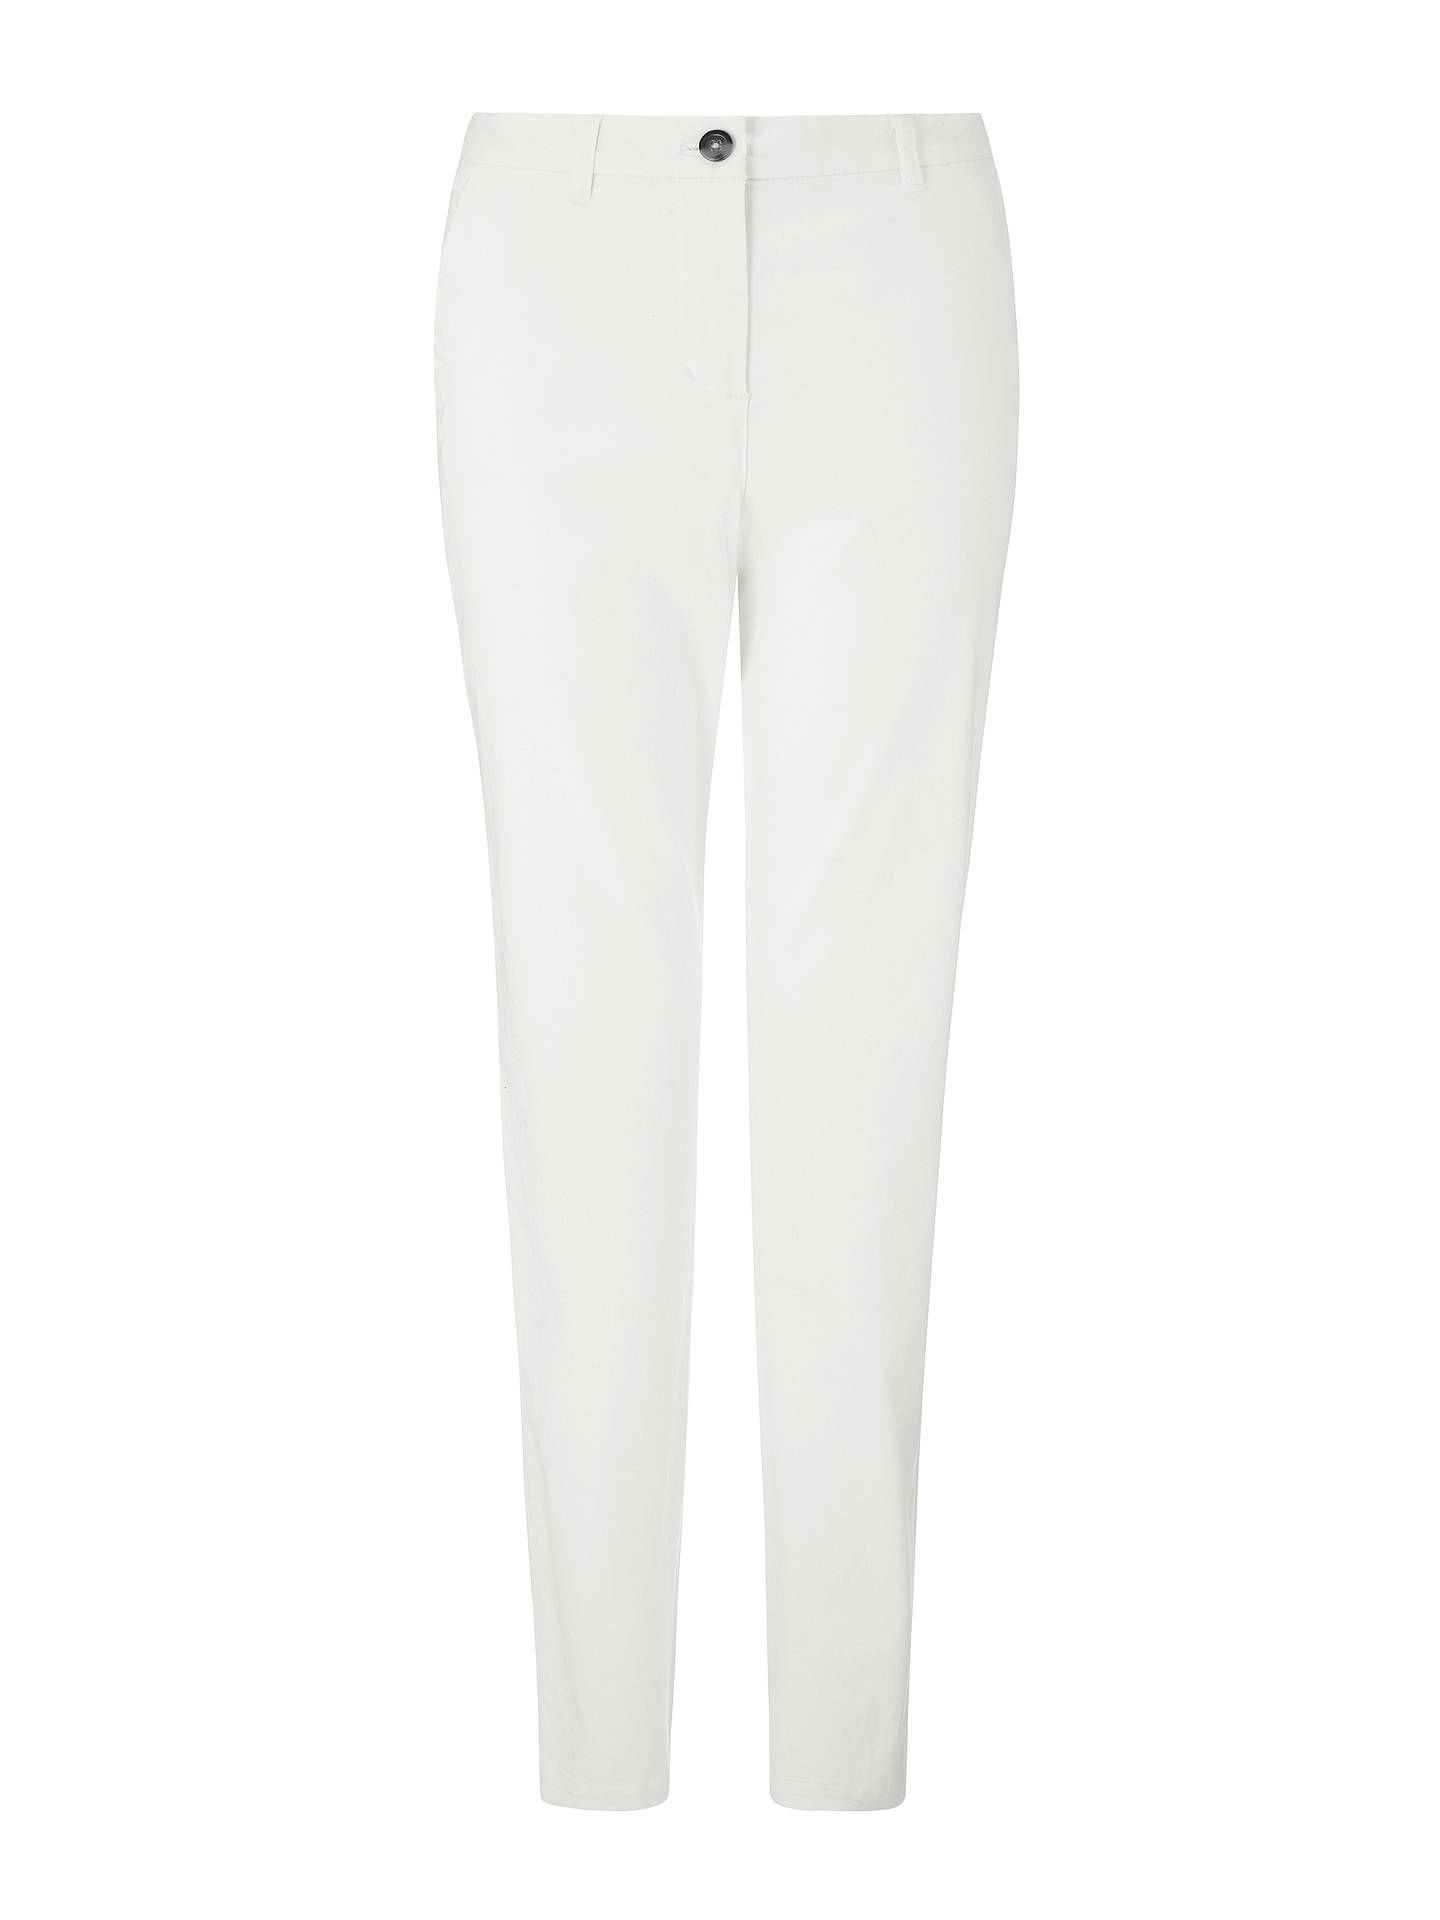 BuyBoden Rachel Spot Chino Trousers, White, 8 Online at johnlewis.com